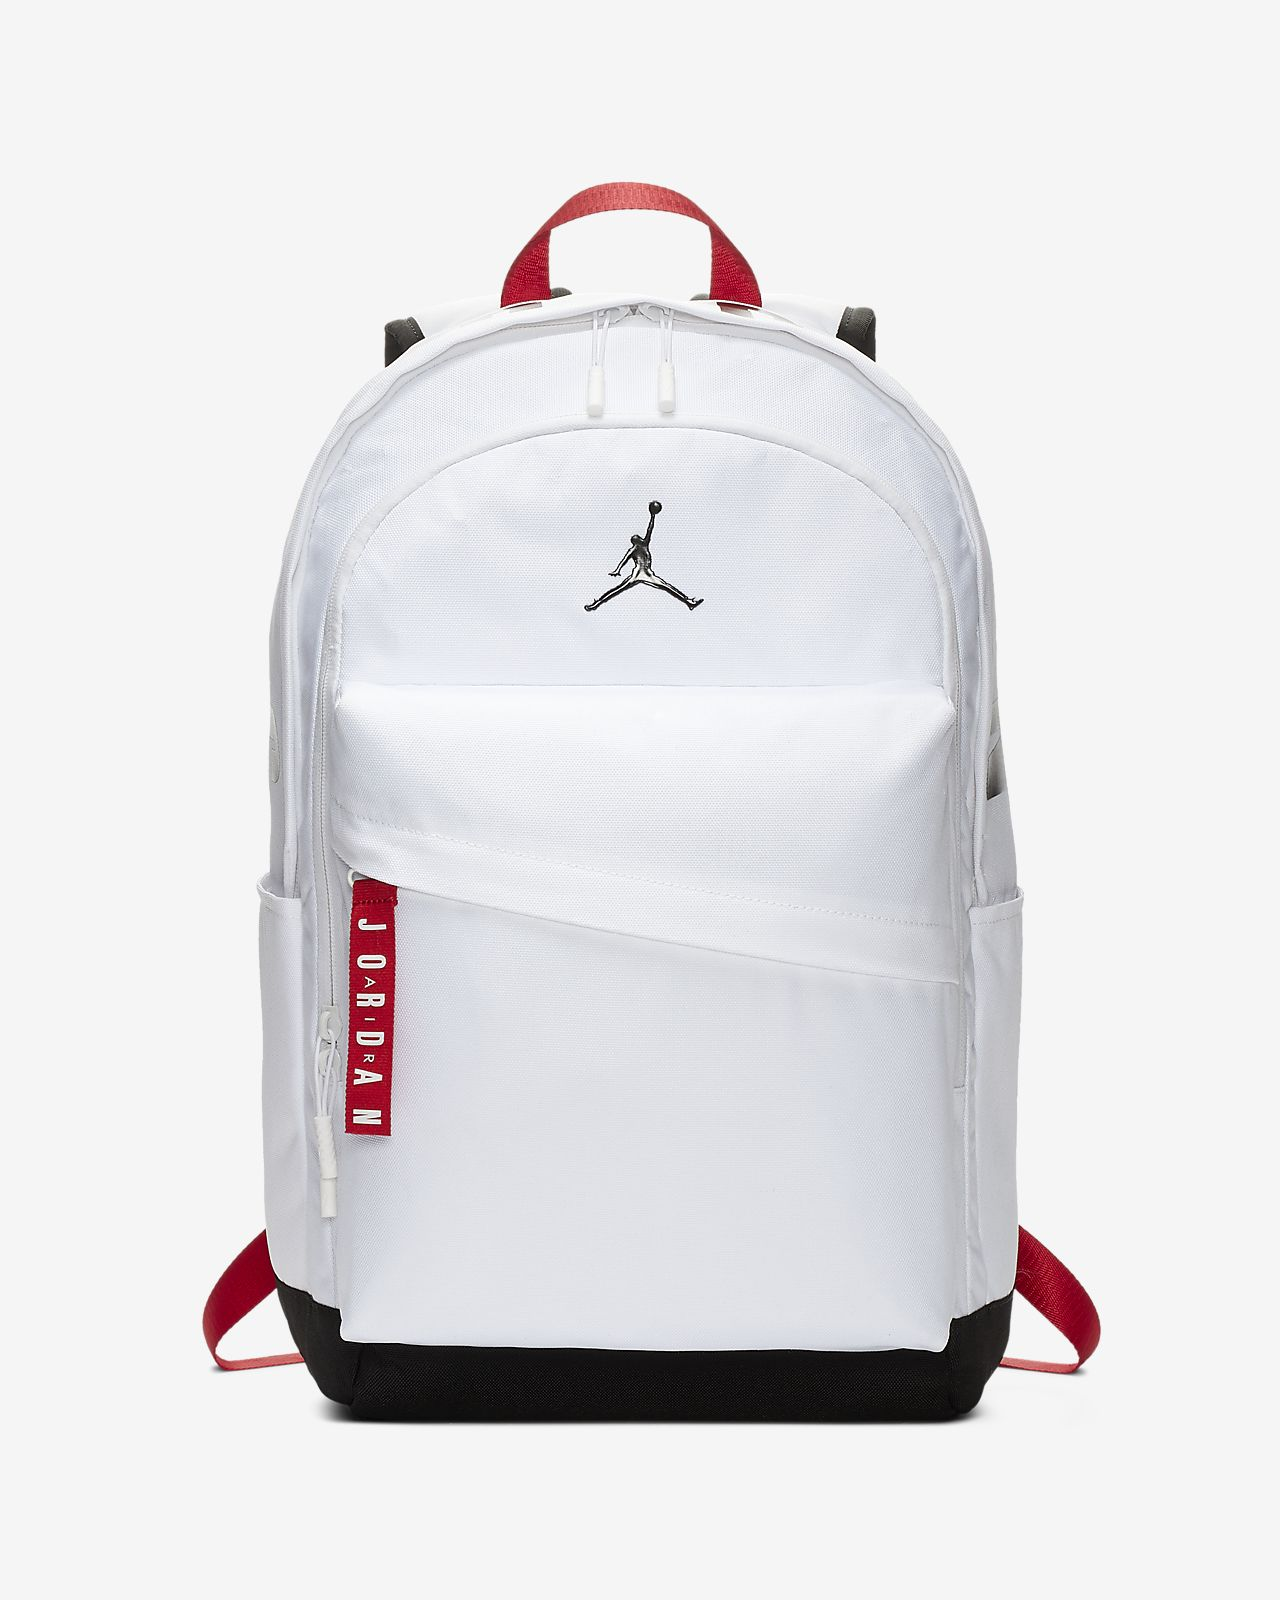 21dc194d9845 Low Resolution Jordan Air Patrol Backpack Jordan Air Patrol Backpack